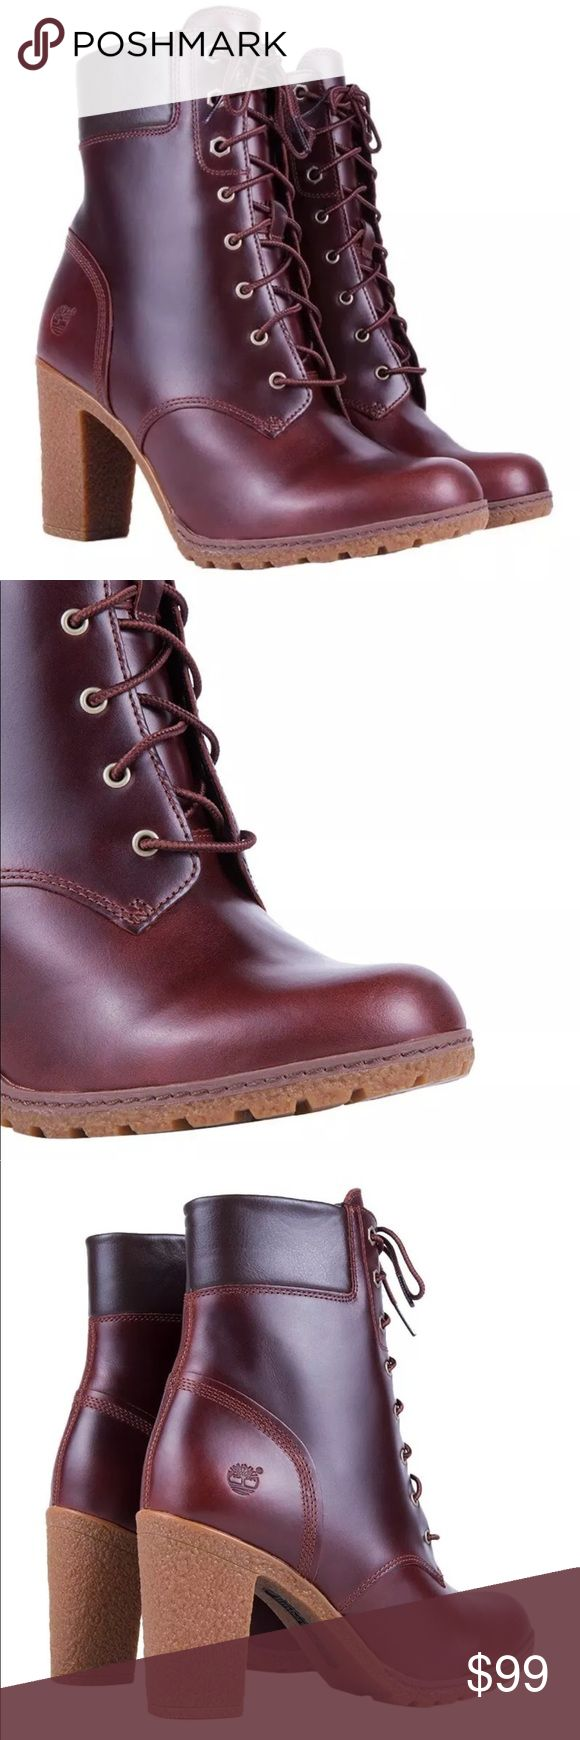 """TIMBERLAND WOMEN'S GLANCY 6-INCH BOOTS TIMBERLAND WOMEN'S GLANCY 6-INCH BOOTS Dark Brown Smooth Leather 3""""Heel. Pls ask me for your size if it's not listed. Serious inquires only thanks. Hot sale Timberland Shoes Ankle Boots & Booties"""